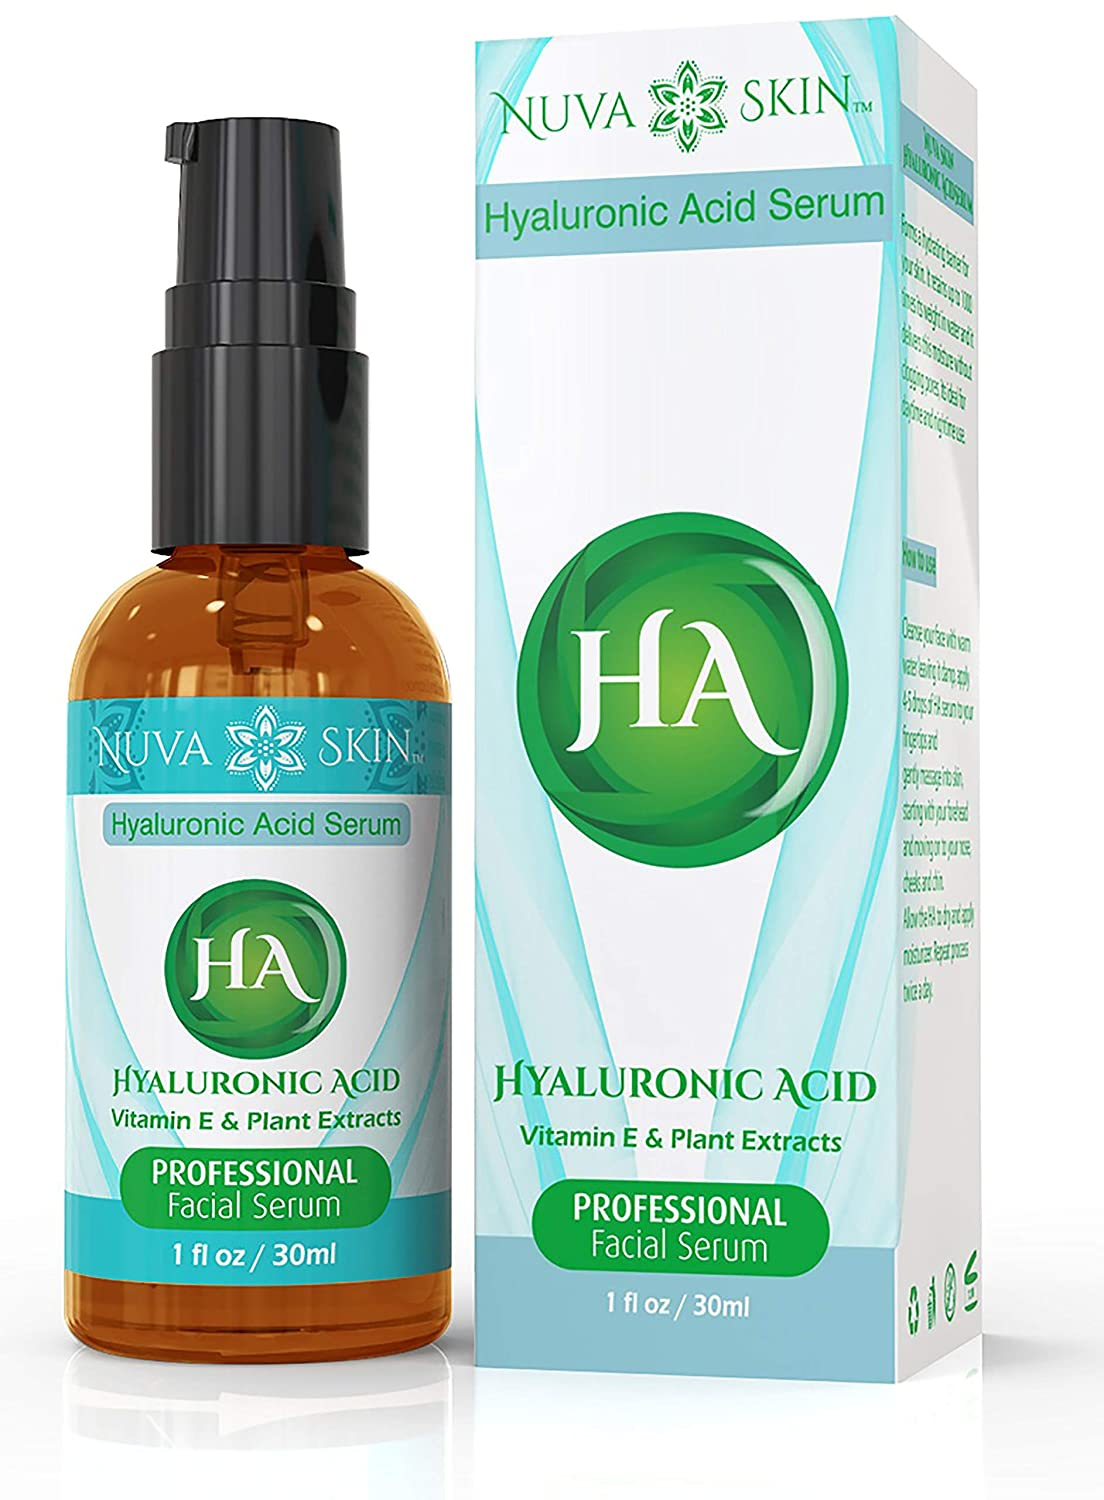 Nuva Skin Hyaluronic Acid Serum - Intense Hydrating Moisturizer - Non-Greasy, Paraben-Free Natural Facial Treatment - Anti Wrinkles, Anti Aging, Age & Sun Spot Removal for All Skin Types